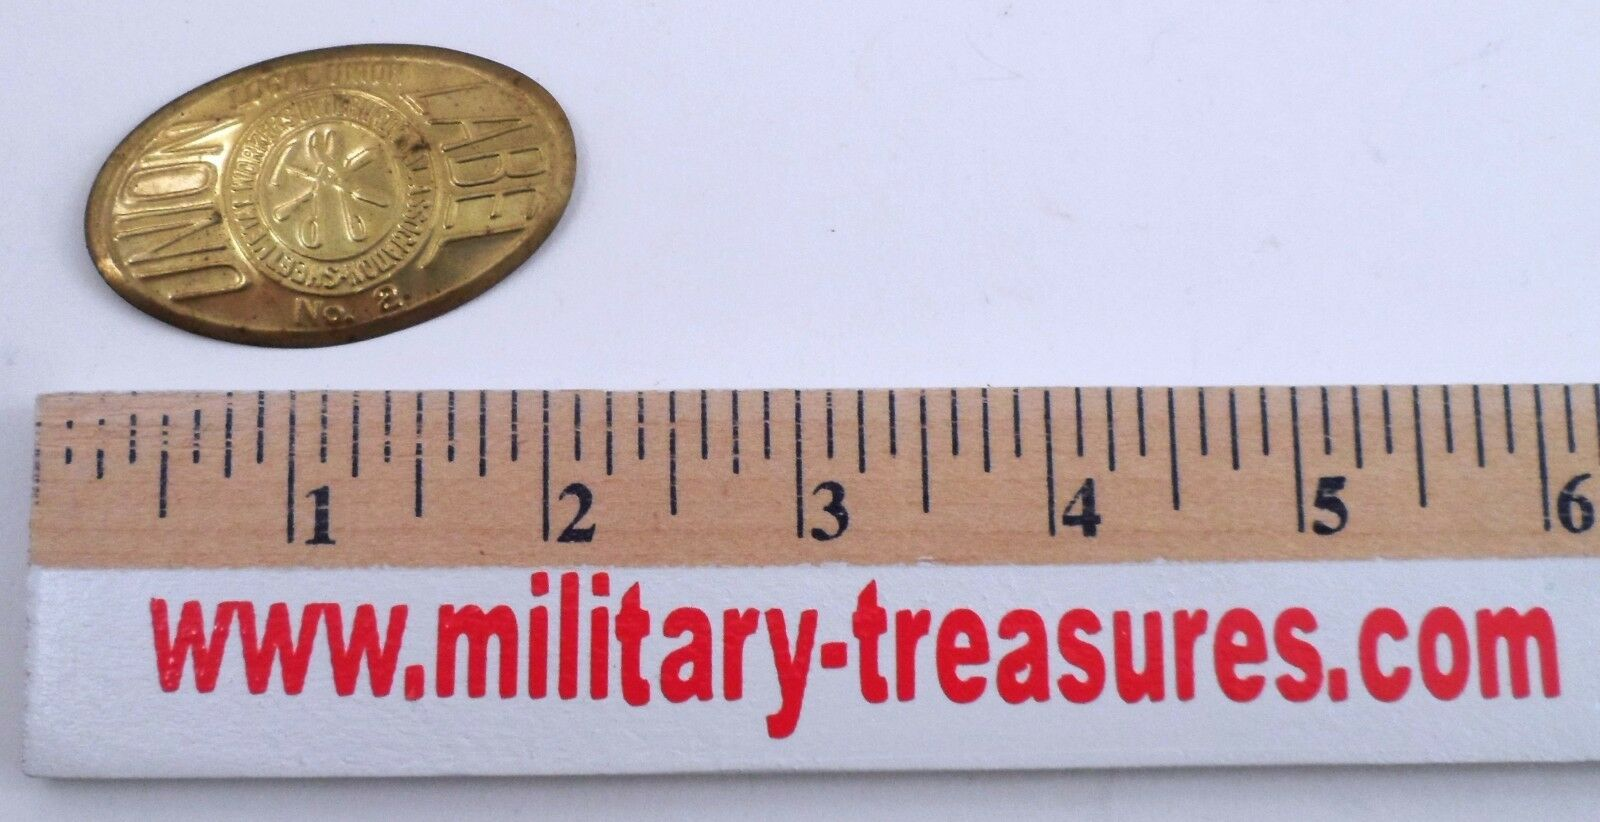 Sheet Metal Workers International SMWIA Local 2 Solid Thin Brass Union Label Tag